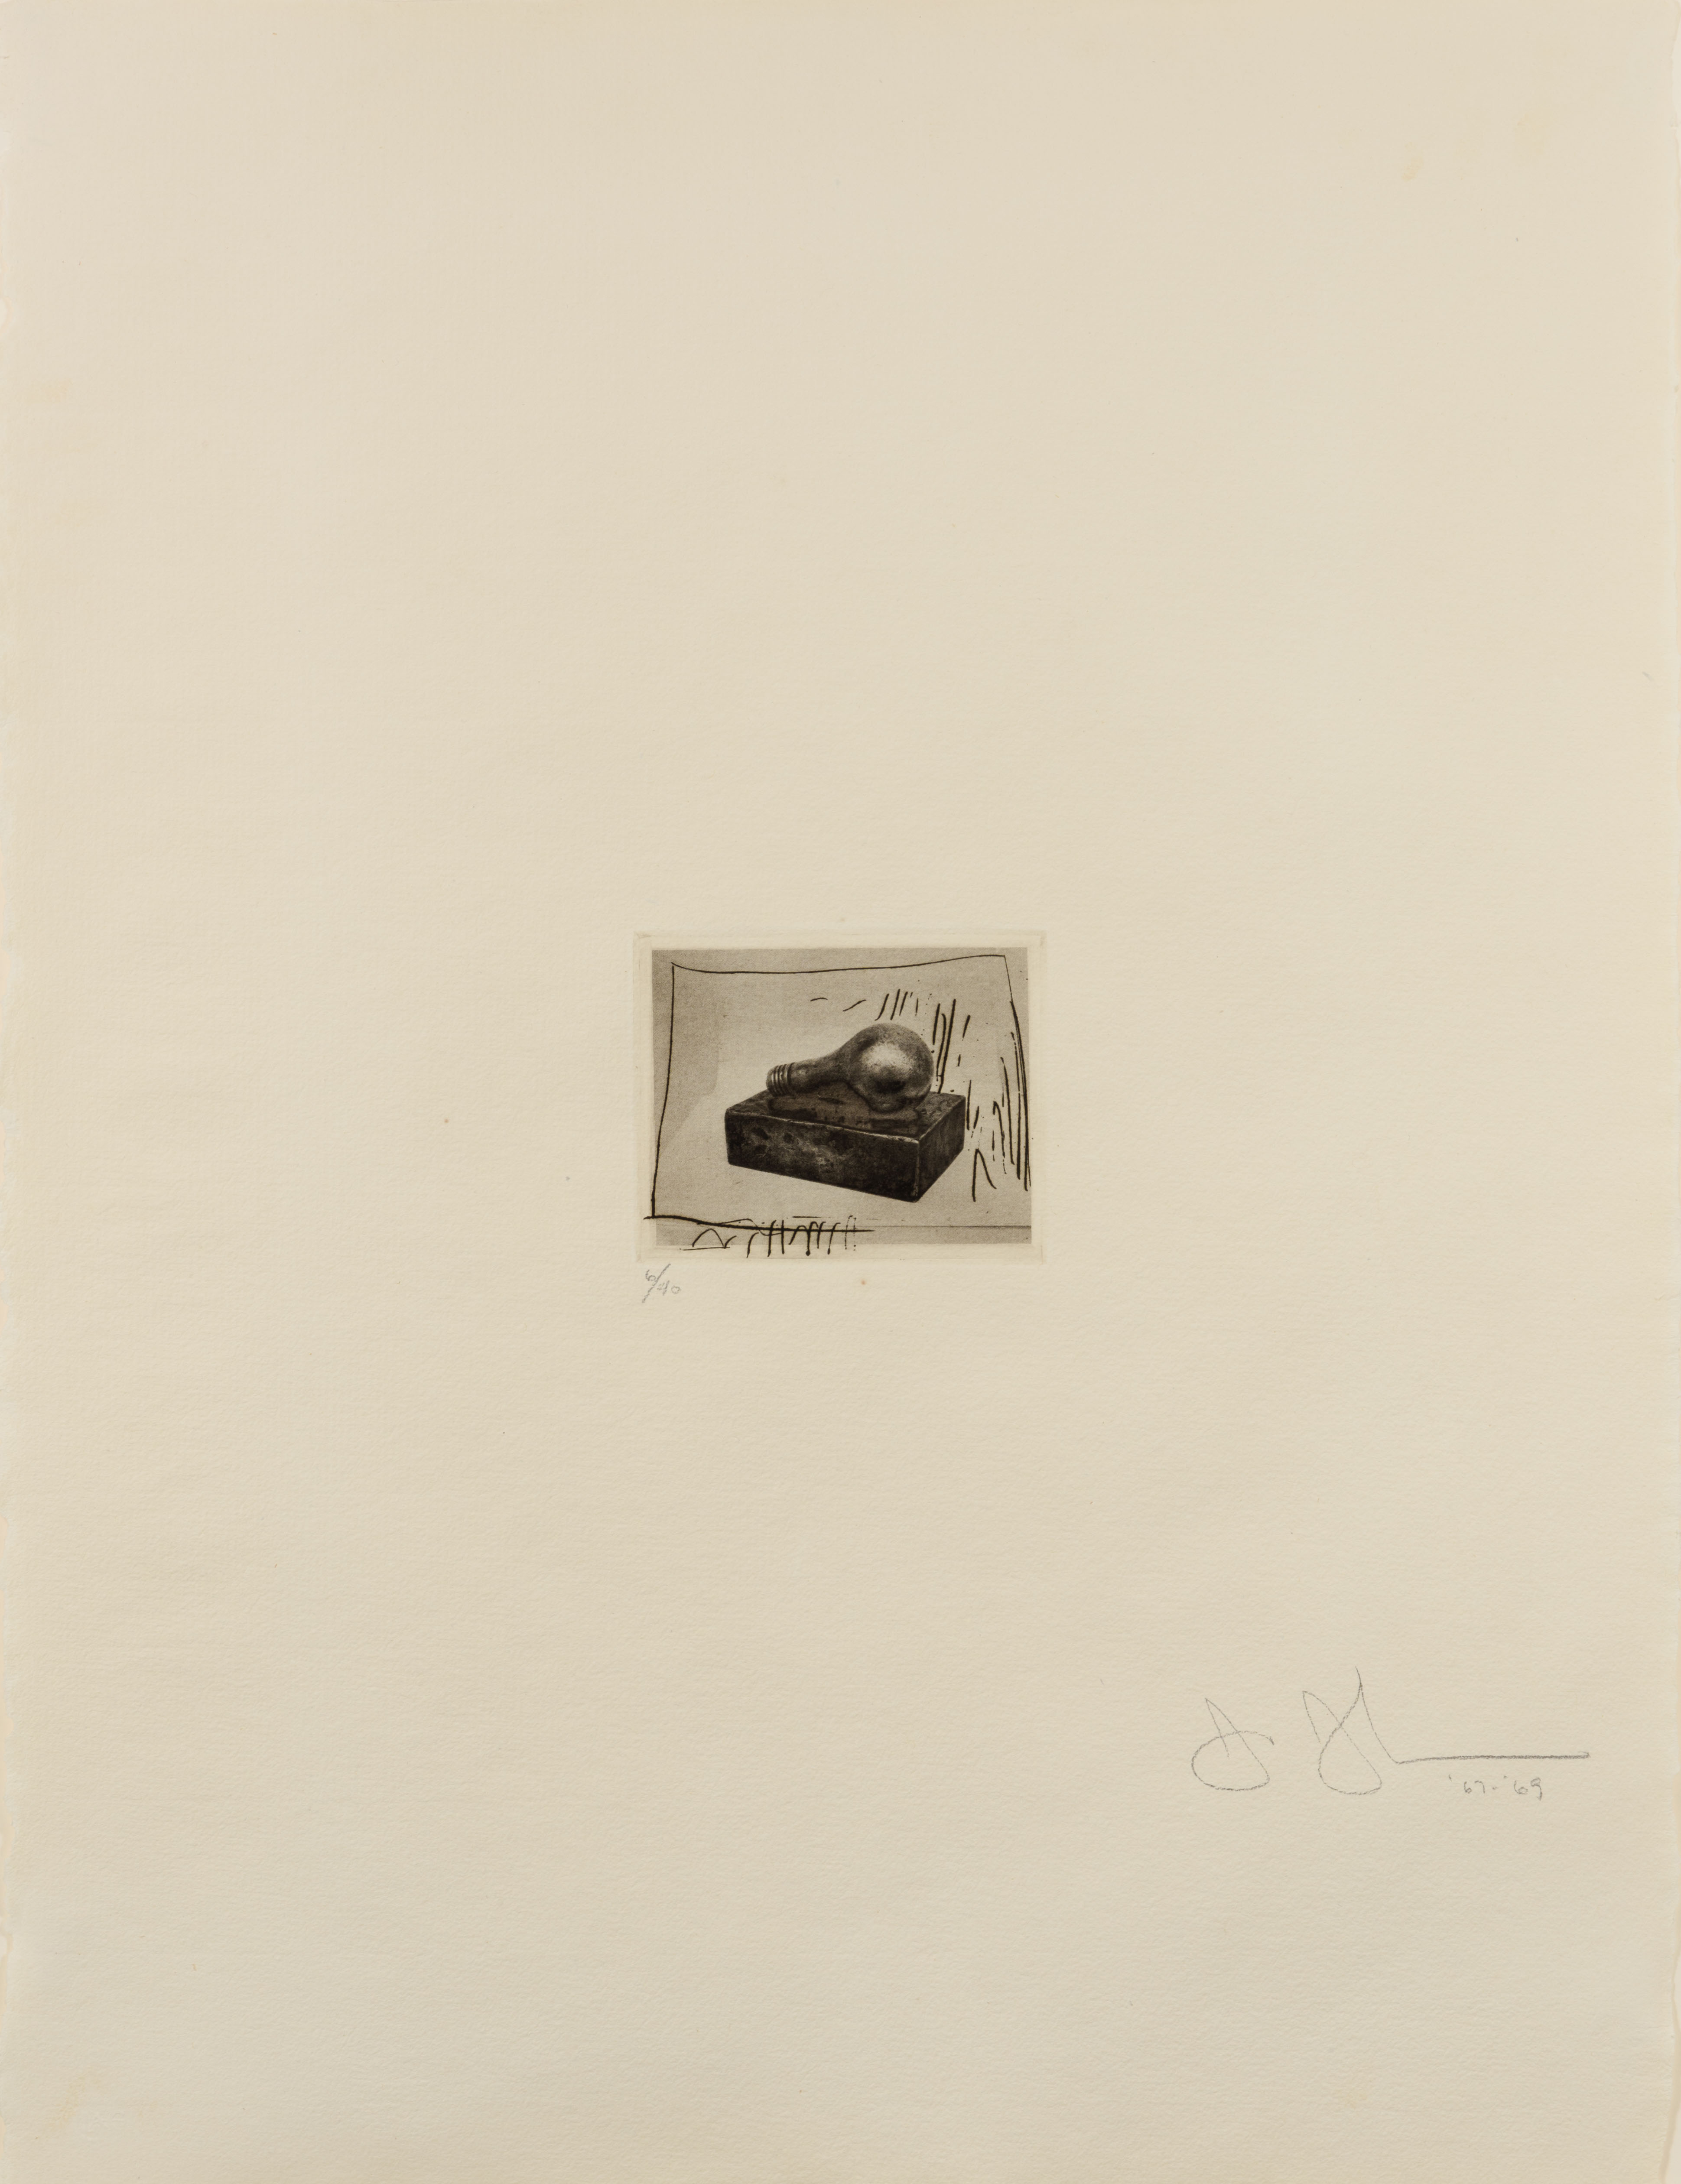 Light Bulb (Small), 1st Etchings, 2nd State